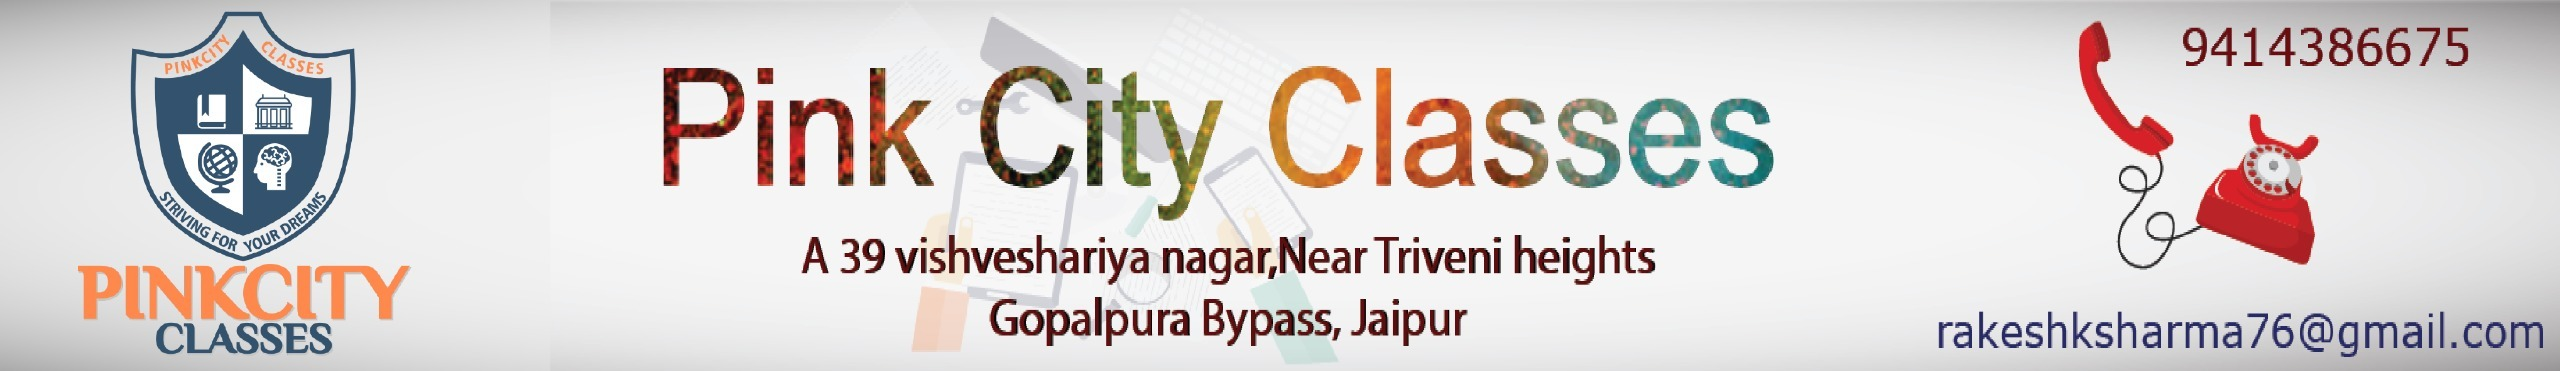 Pink City Classes (@pinkcityclasses) Cover Image